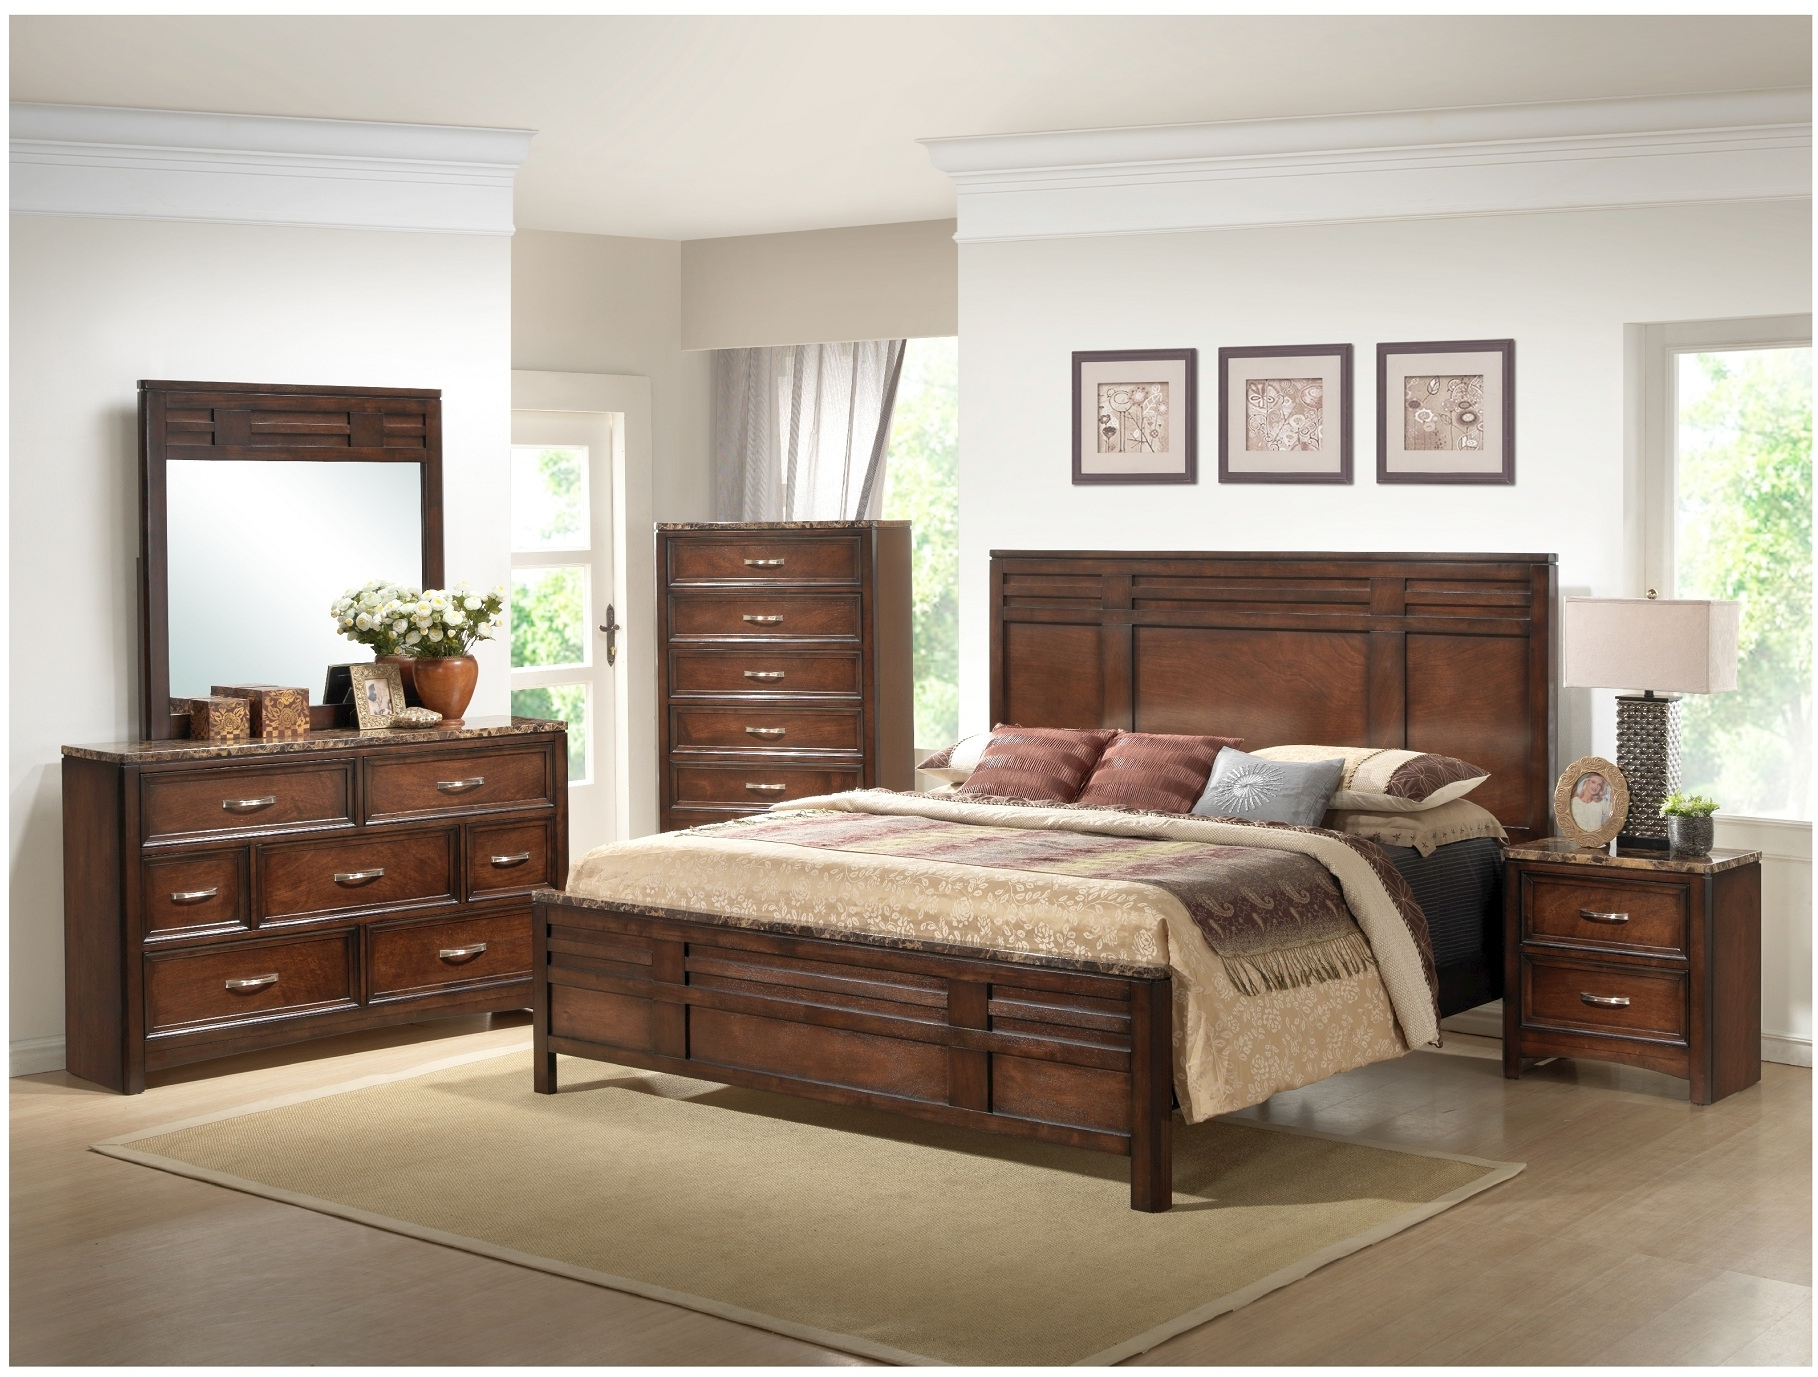 Walnut bedroom furniture sets best home design 2018 for Best bedroom furniture sets